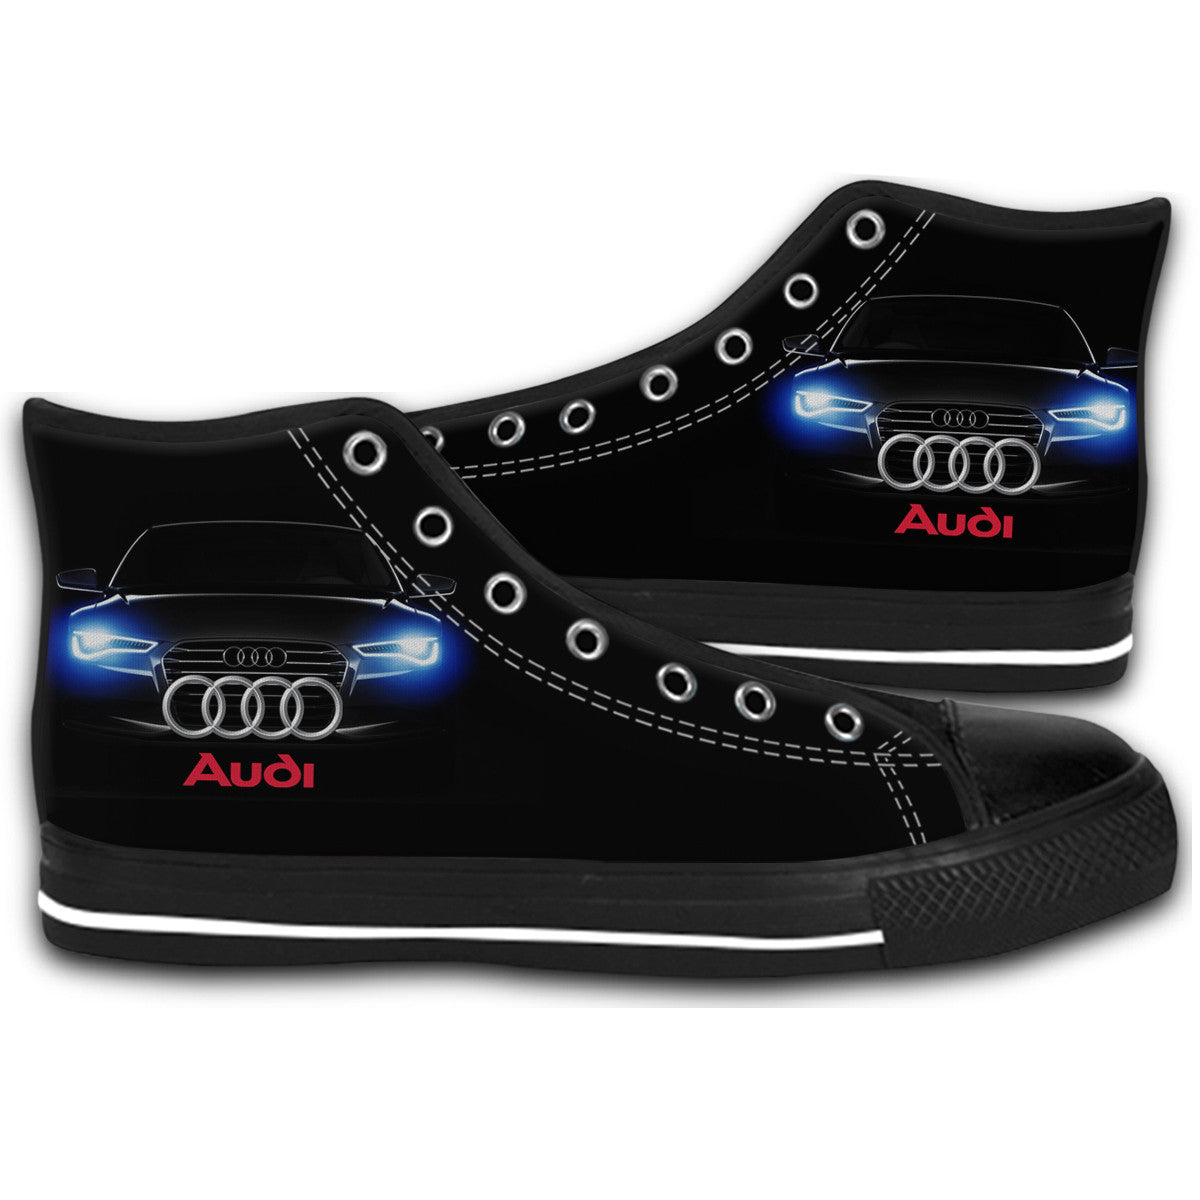 Shoes Sneakers A3 R8 Series Style Fashion EYDH9W2I A Audi Canvas kPuZXi